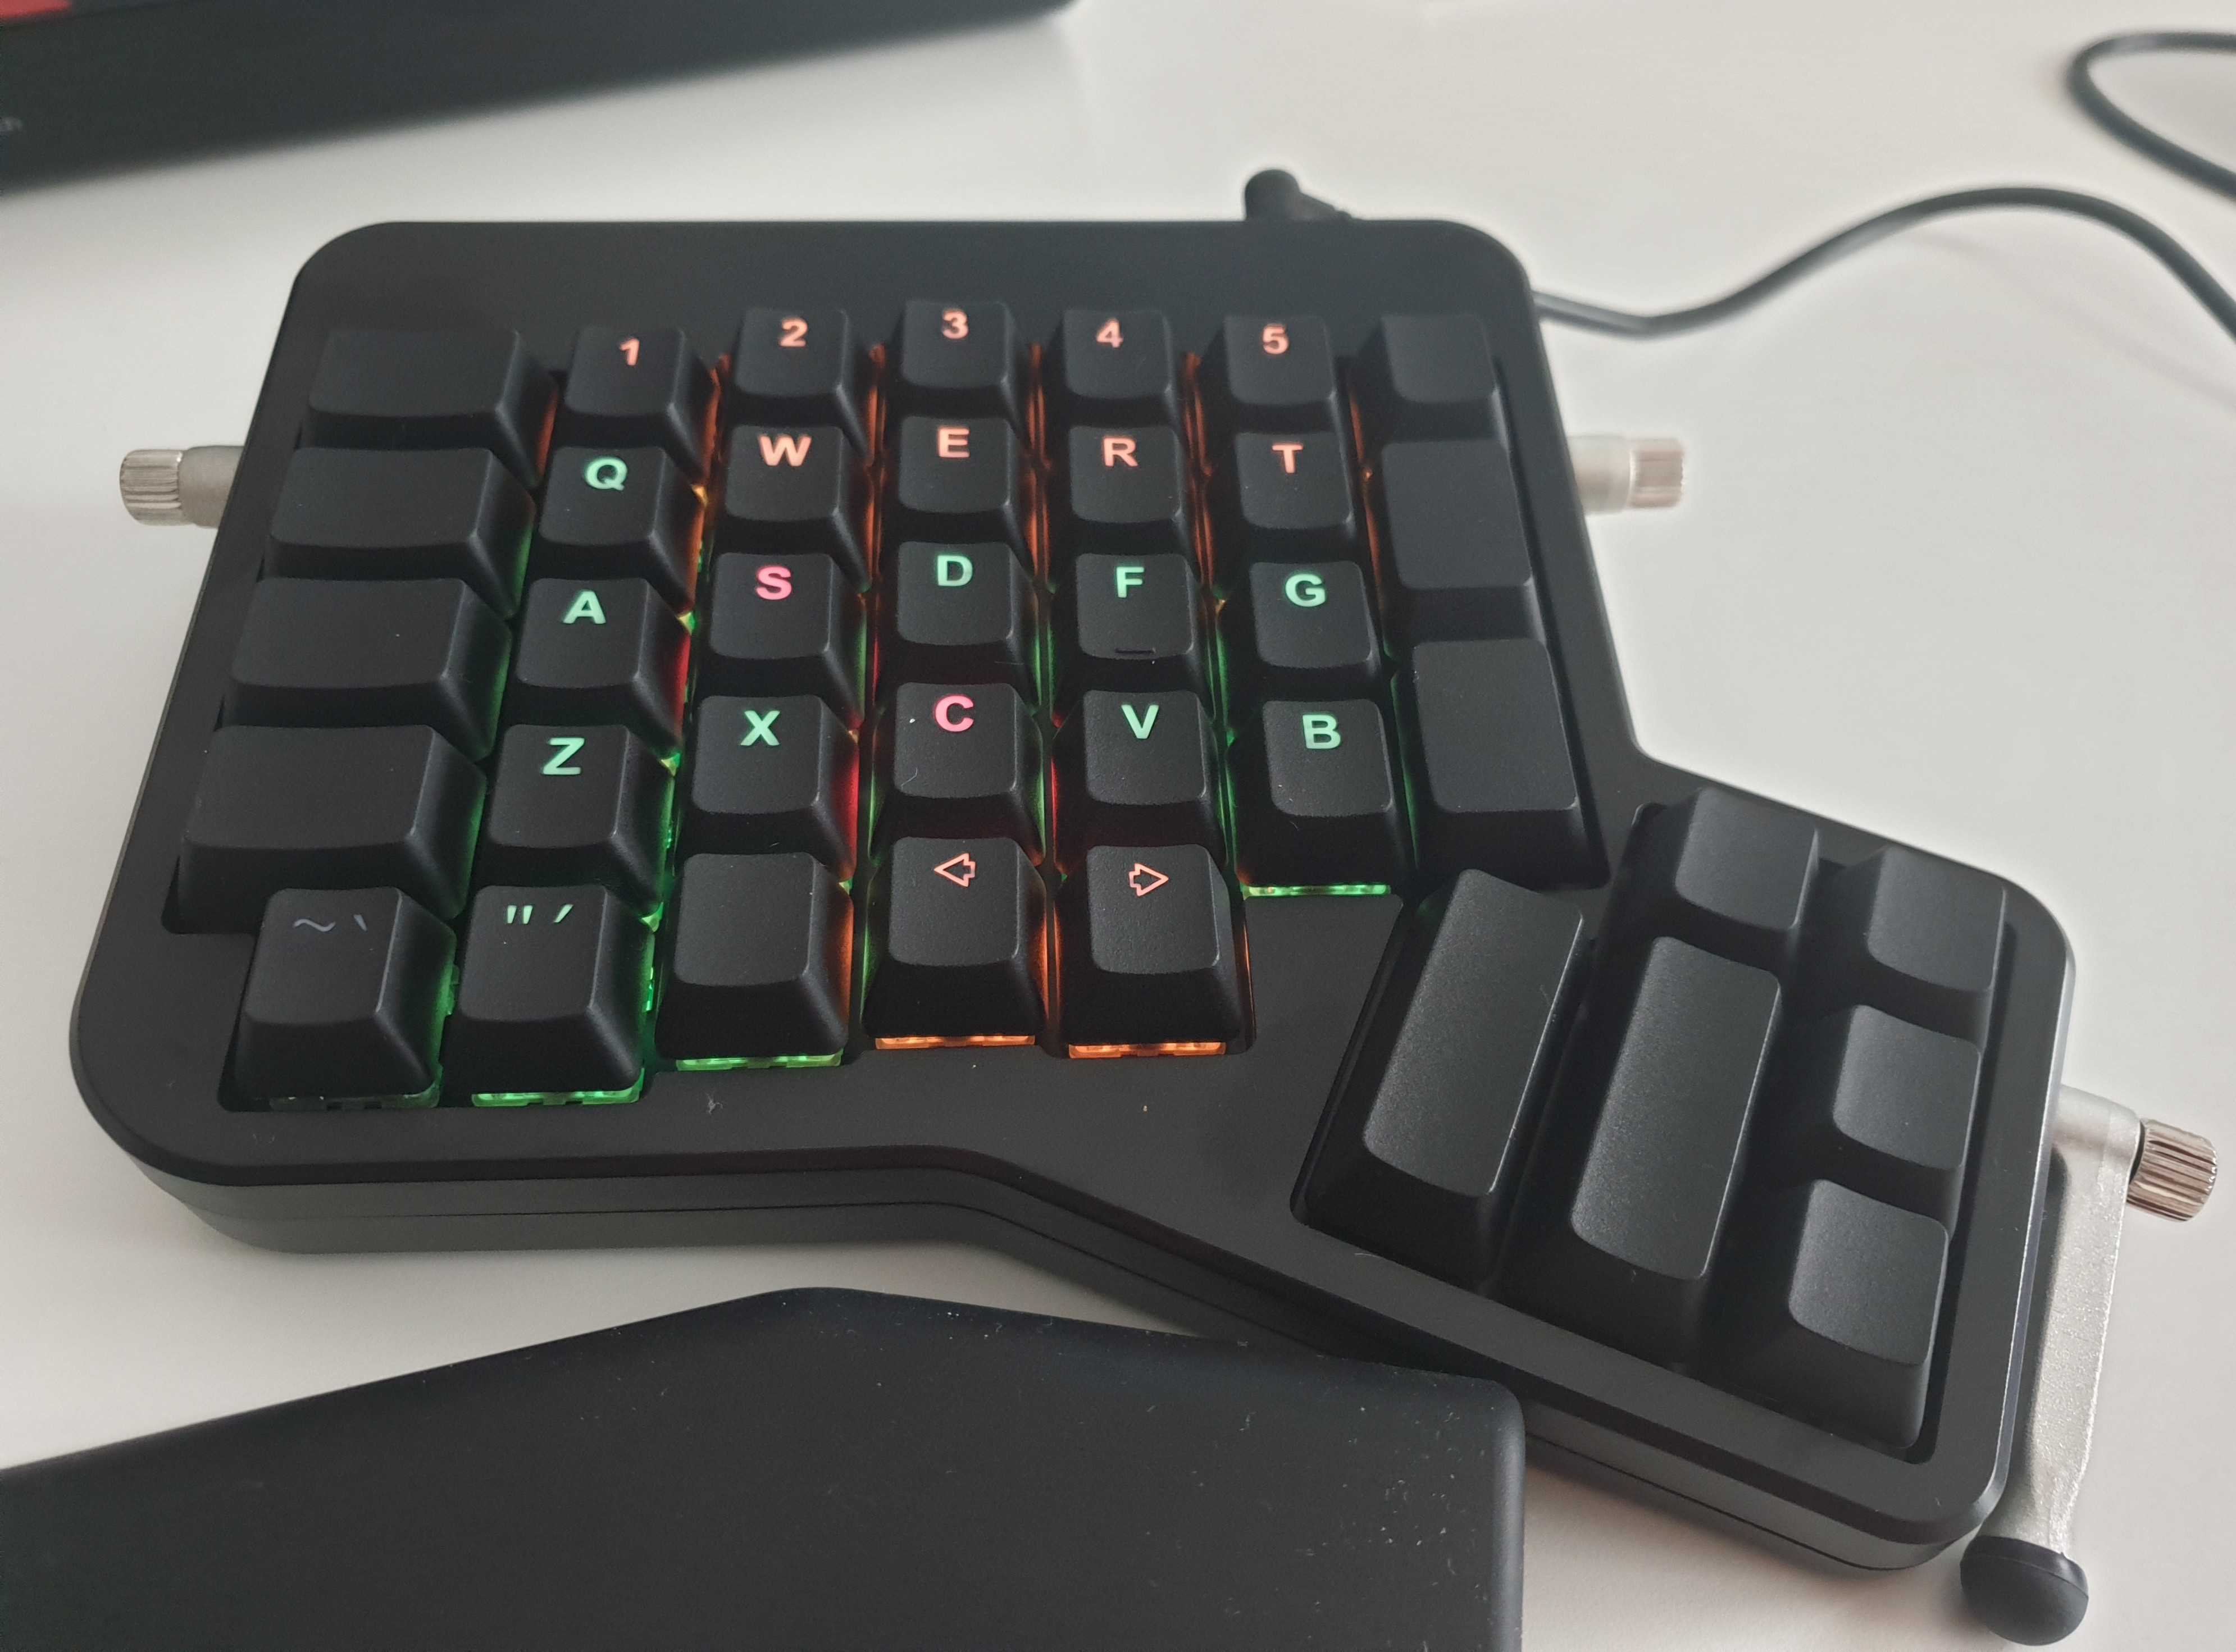 red and orange are special keys, also notice how so thumb keys are too far to use regularly